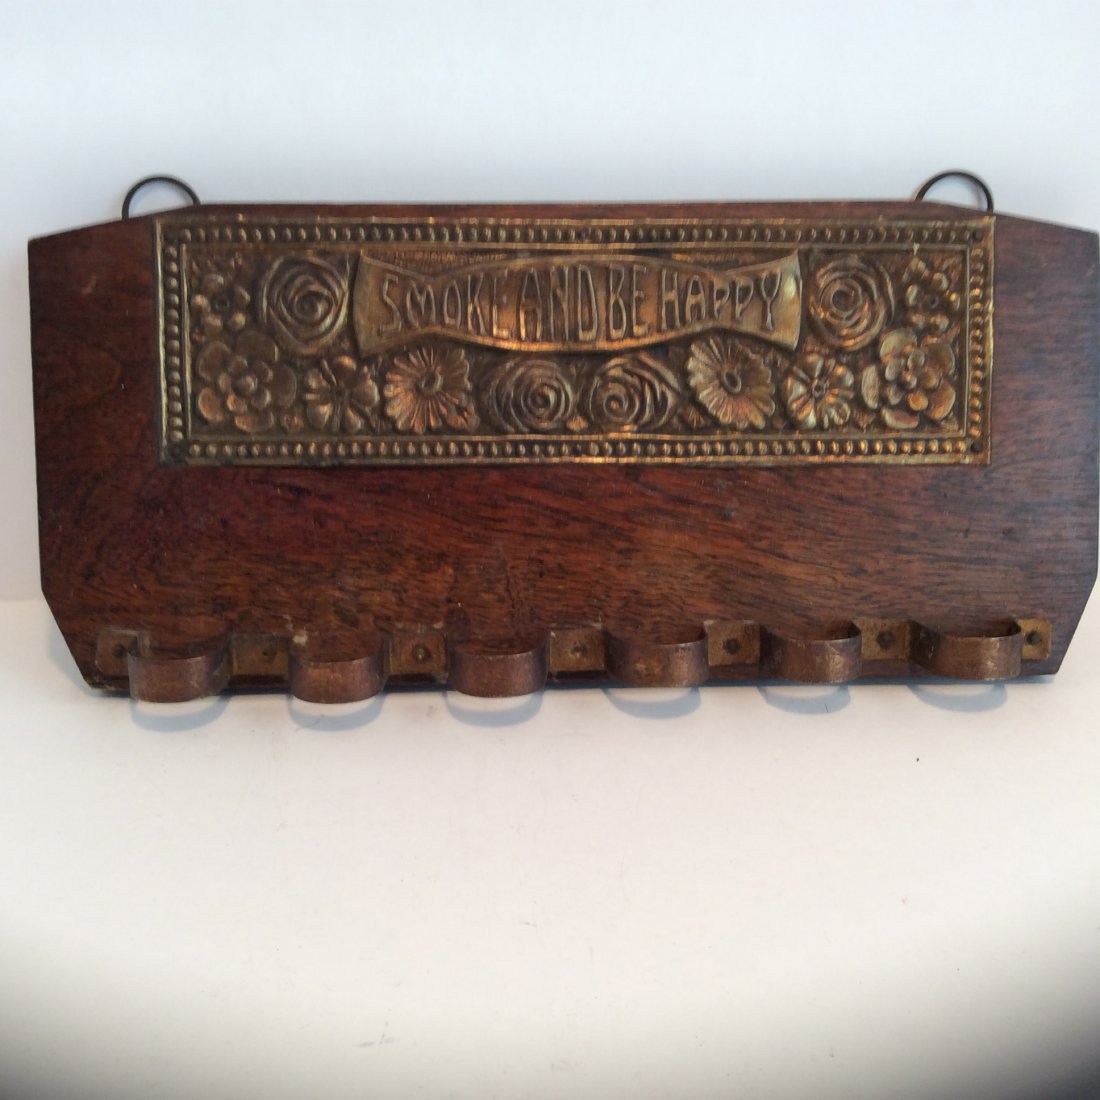 Antique brass and oak SMOKE AND BE HAPPY PIPE RACK